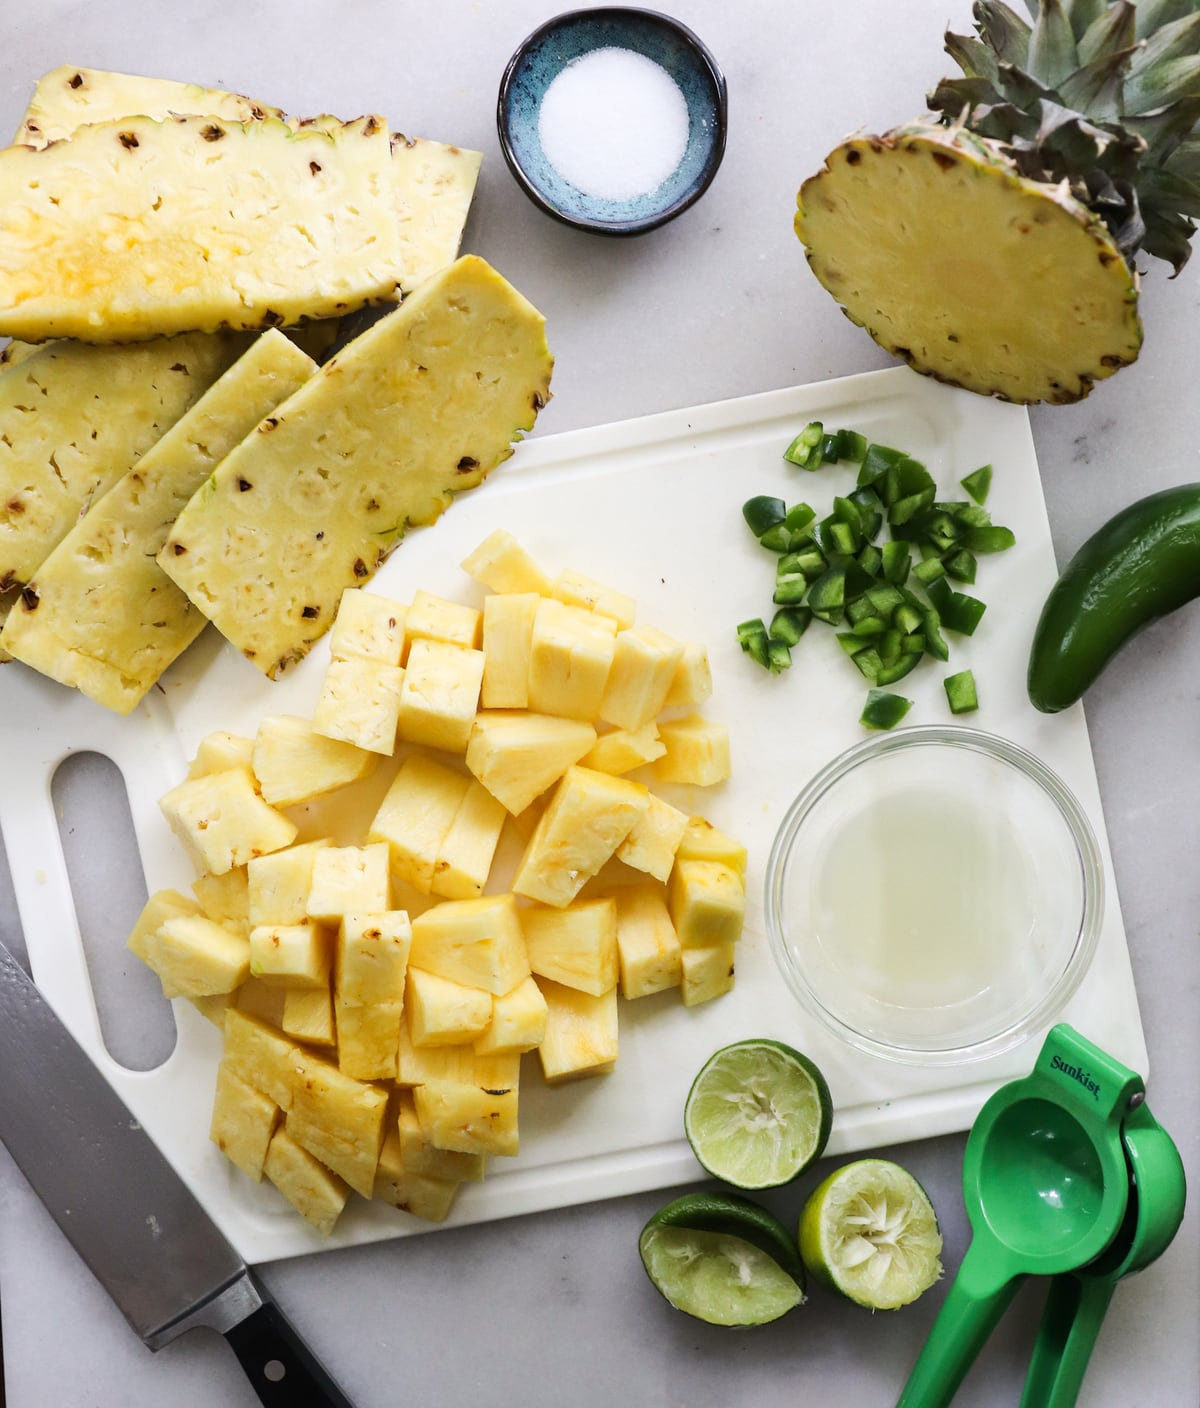 A cutting board with diced pineapple and jalapeno and juiced limes.